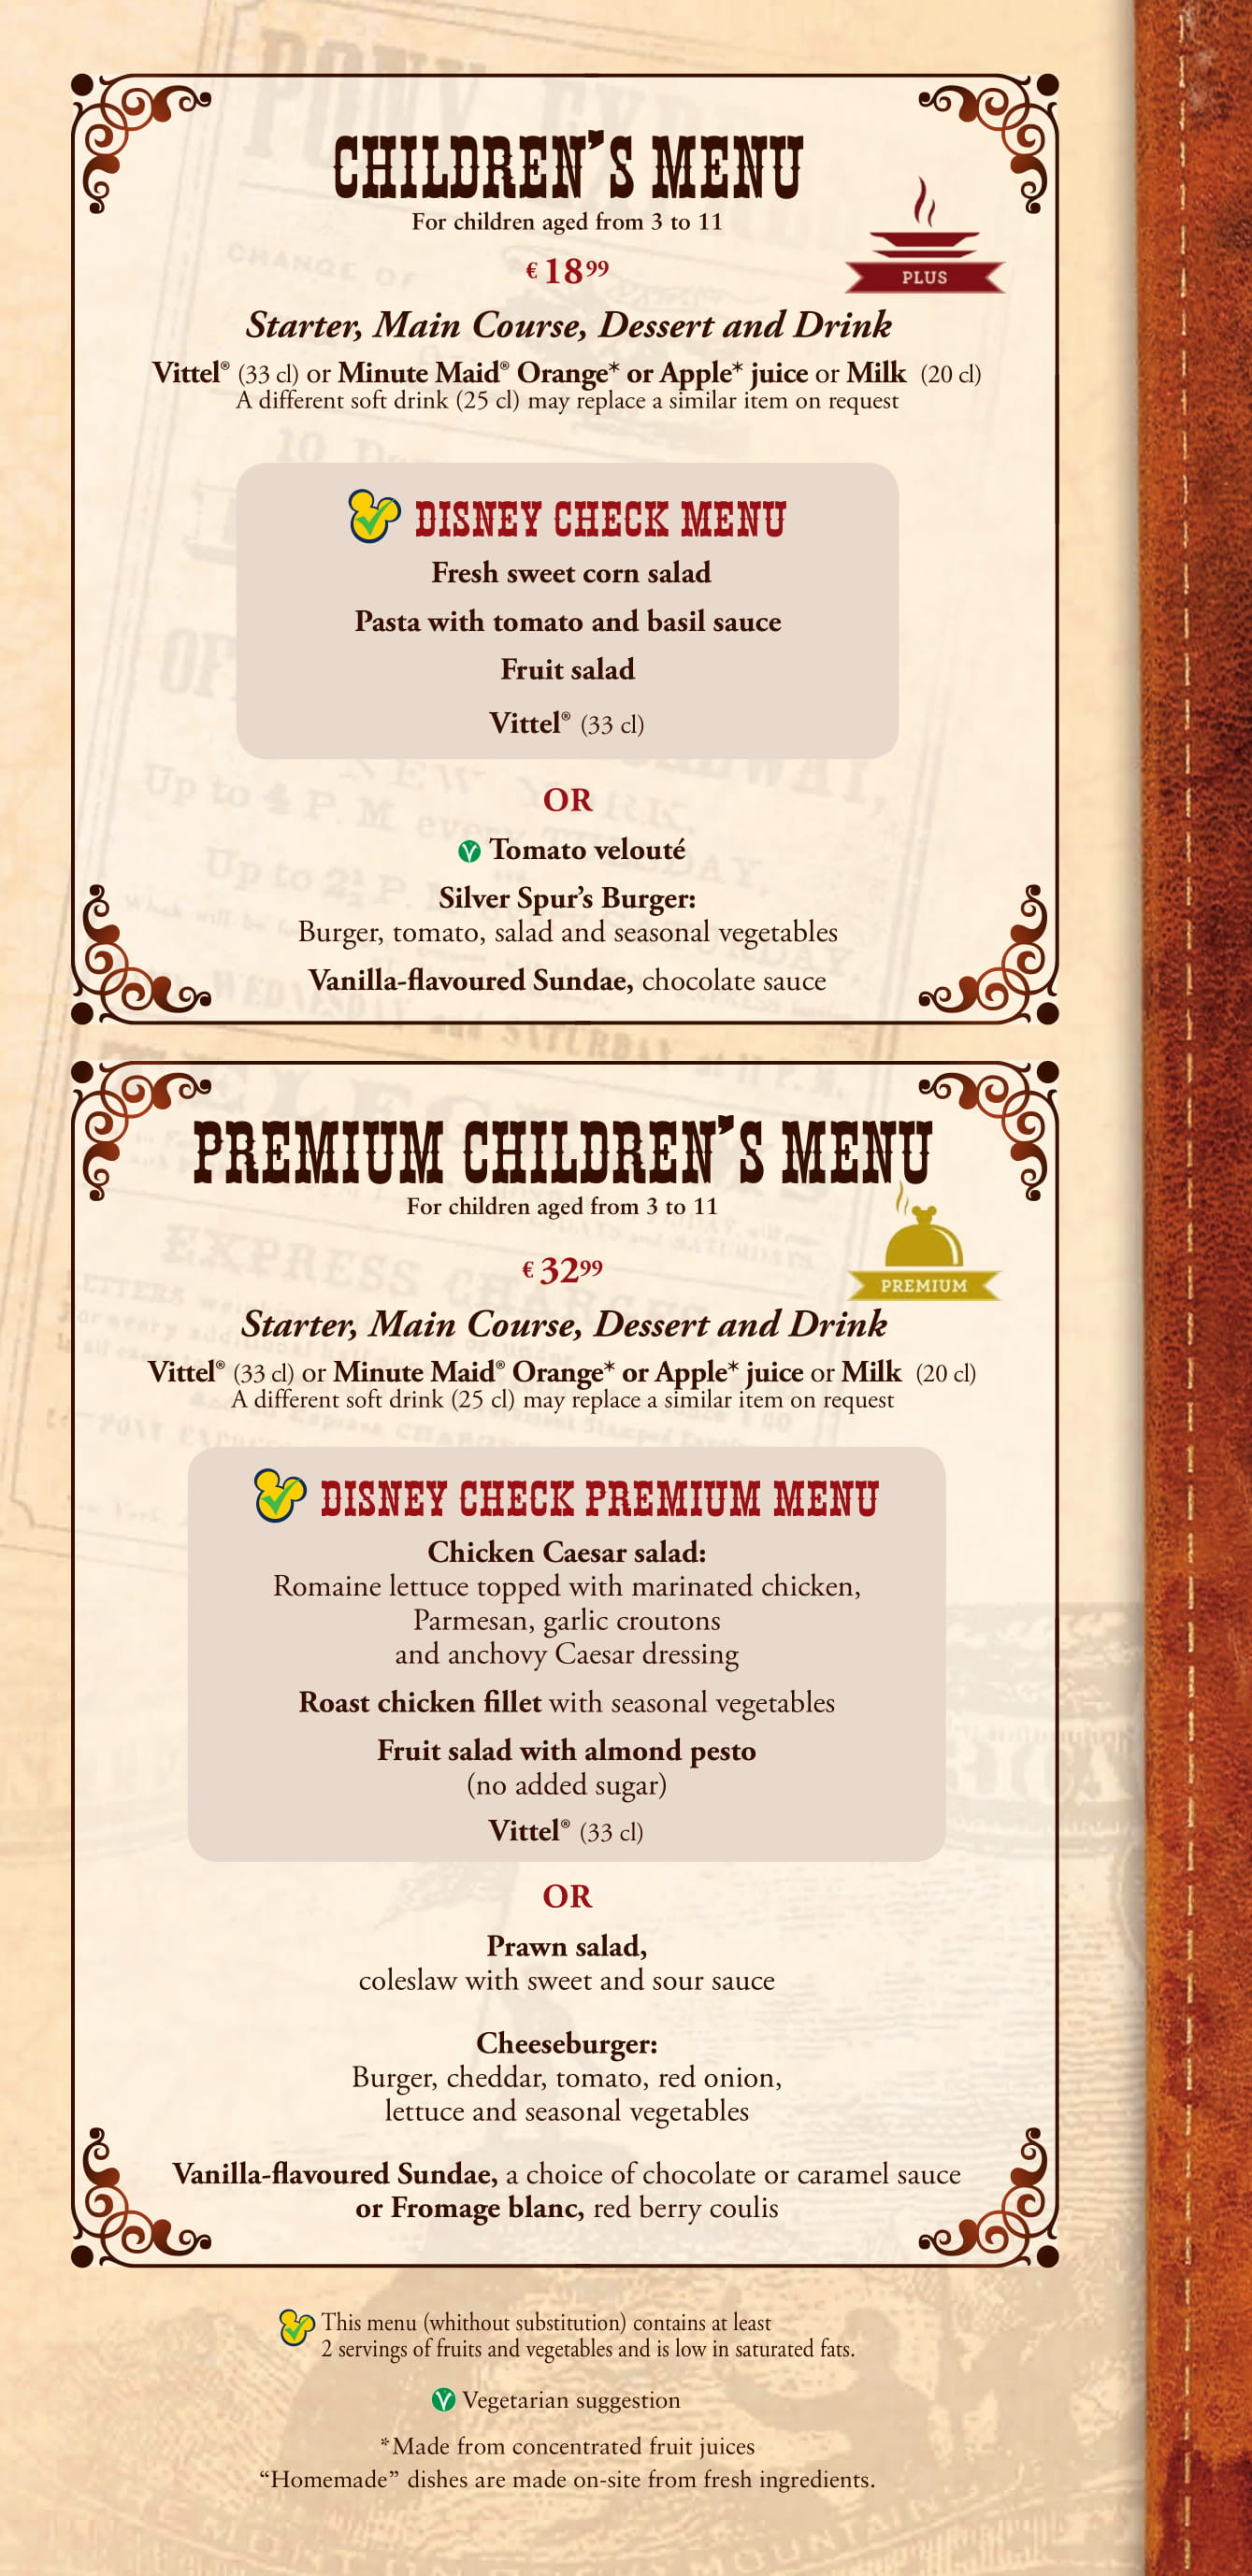 Silver Spur Steakhouse - Children's Menu at Disneyland Paris